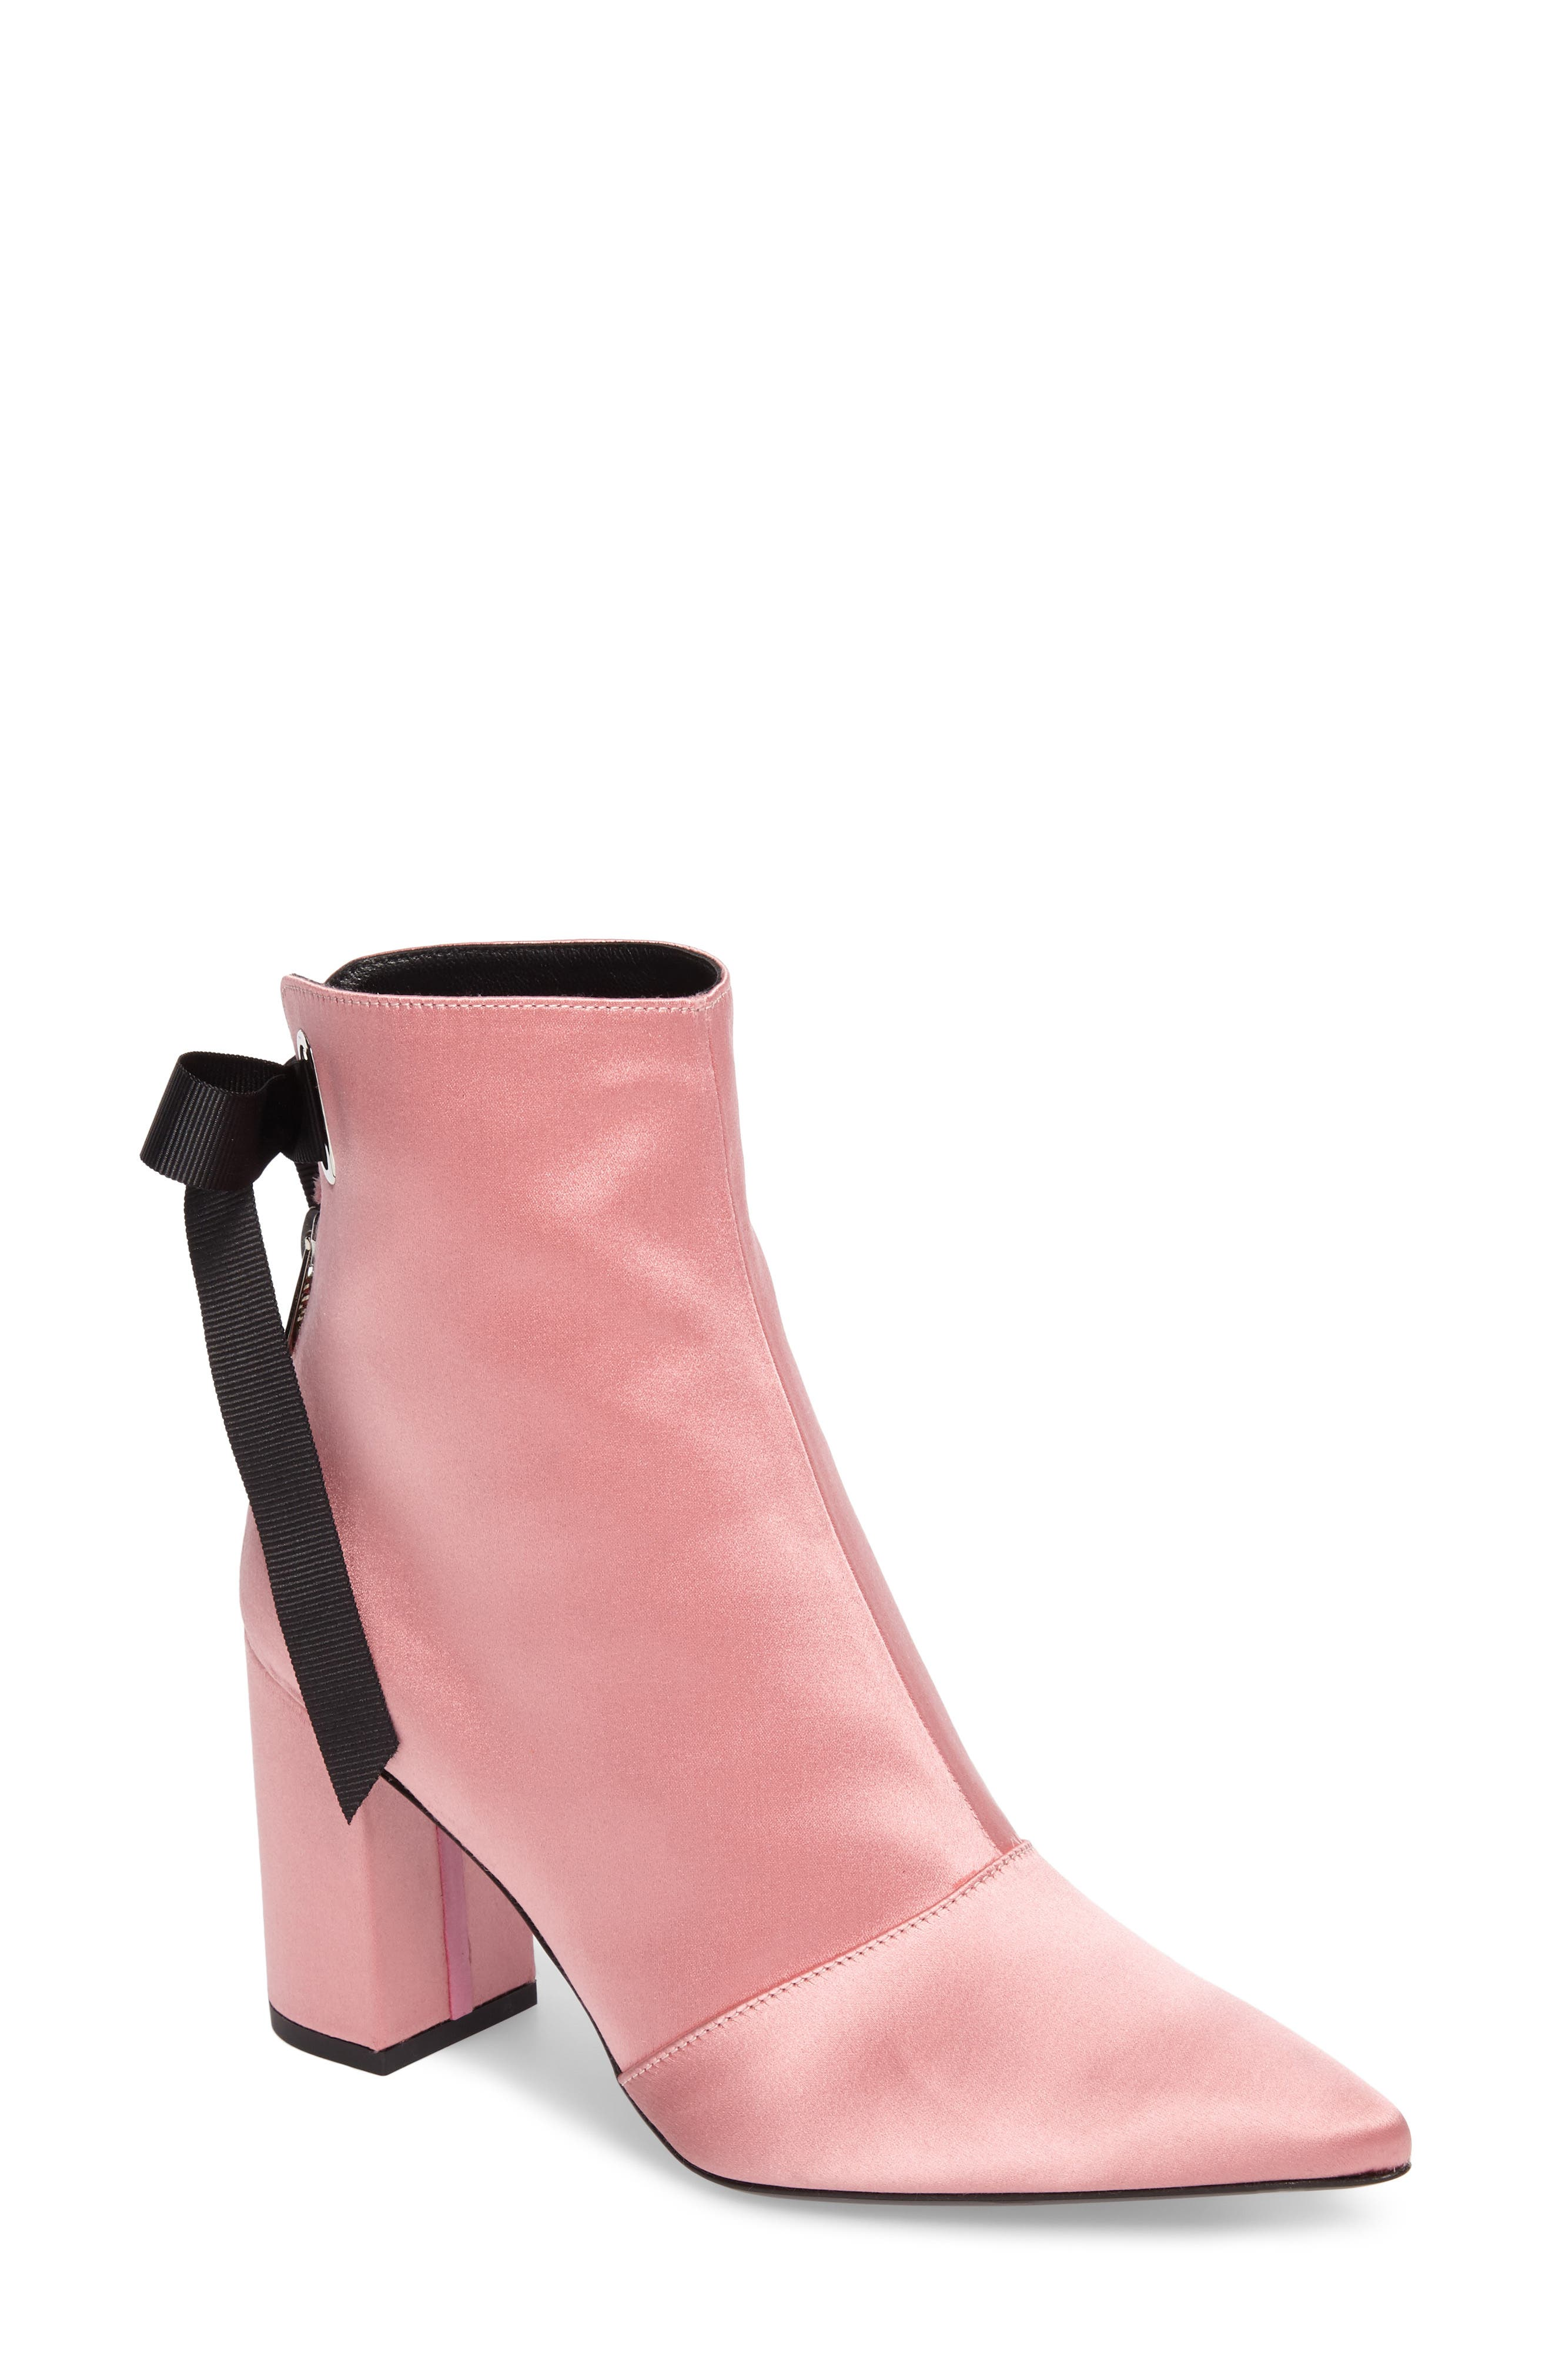 x Self-Portrait Karlis Pointy Toe Bootie,                             Main thumbnail 1, color,                             Pink